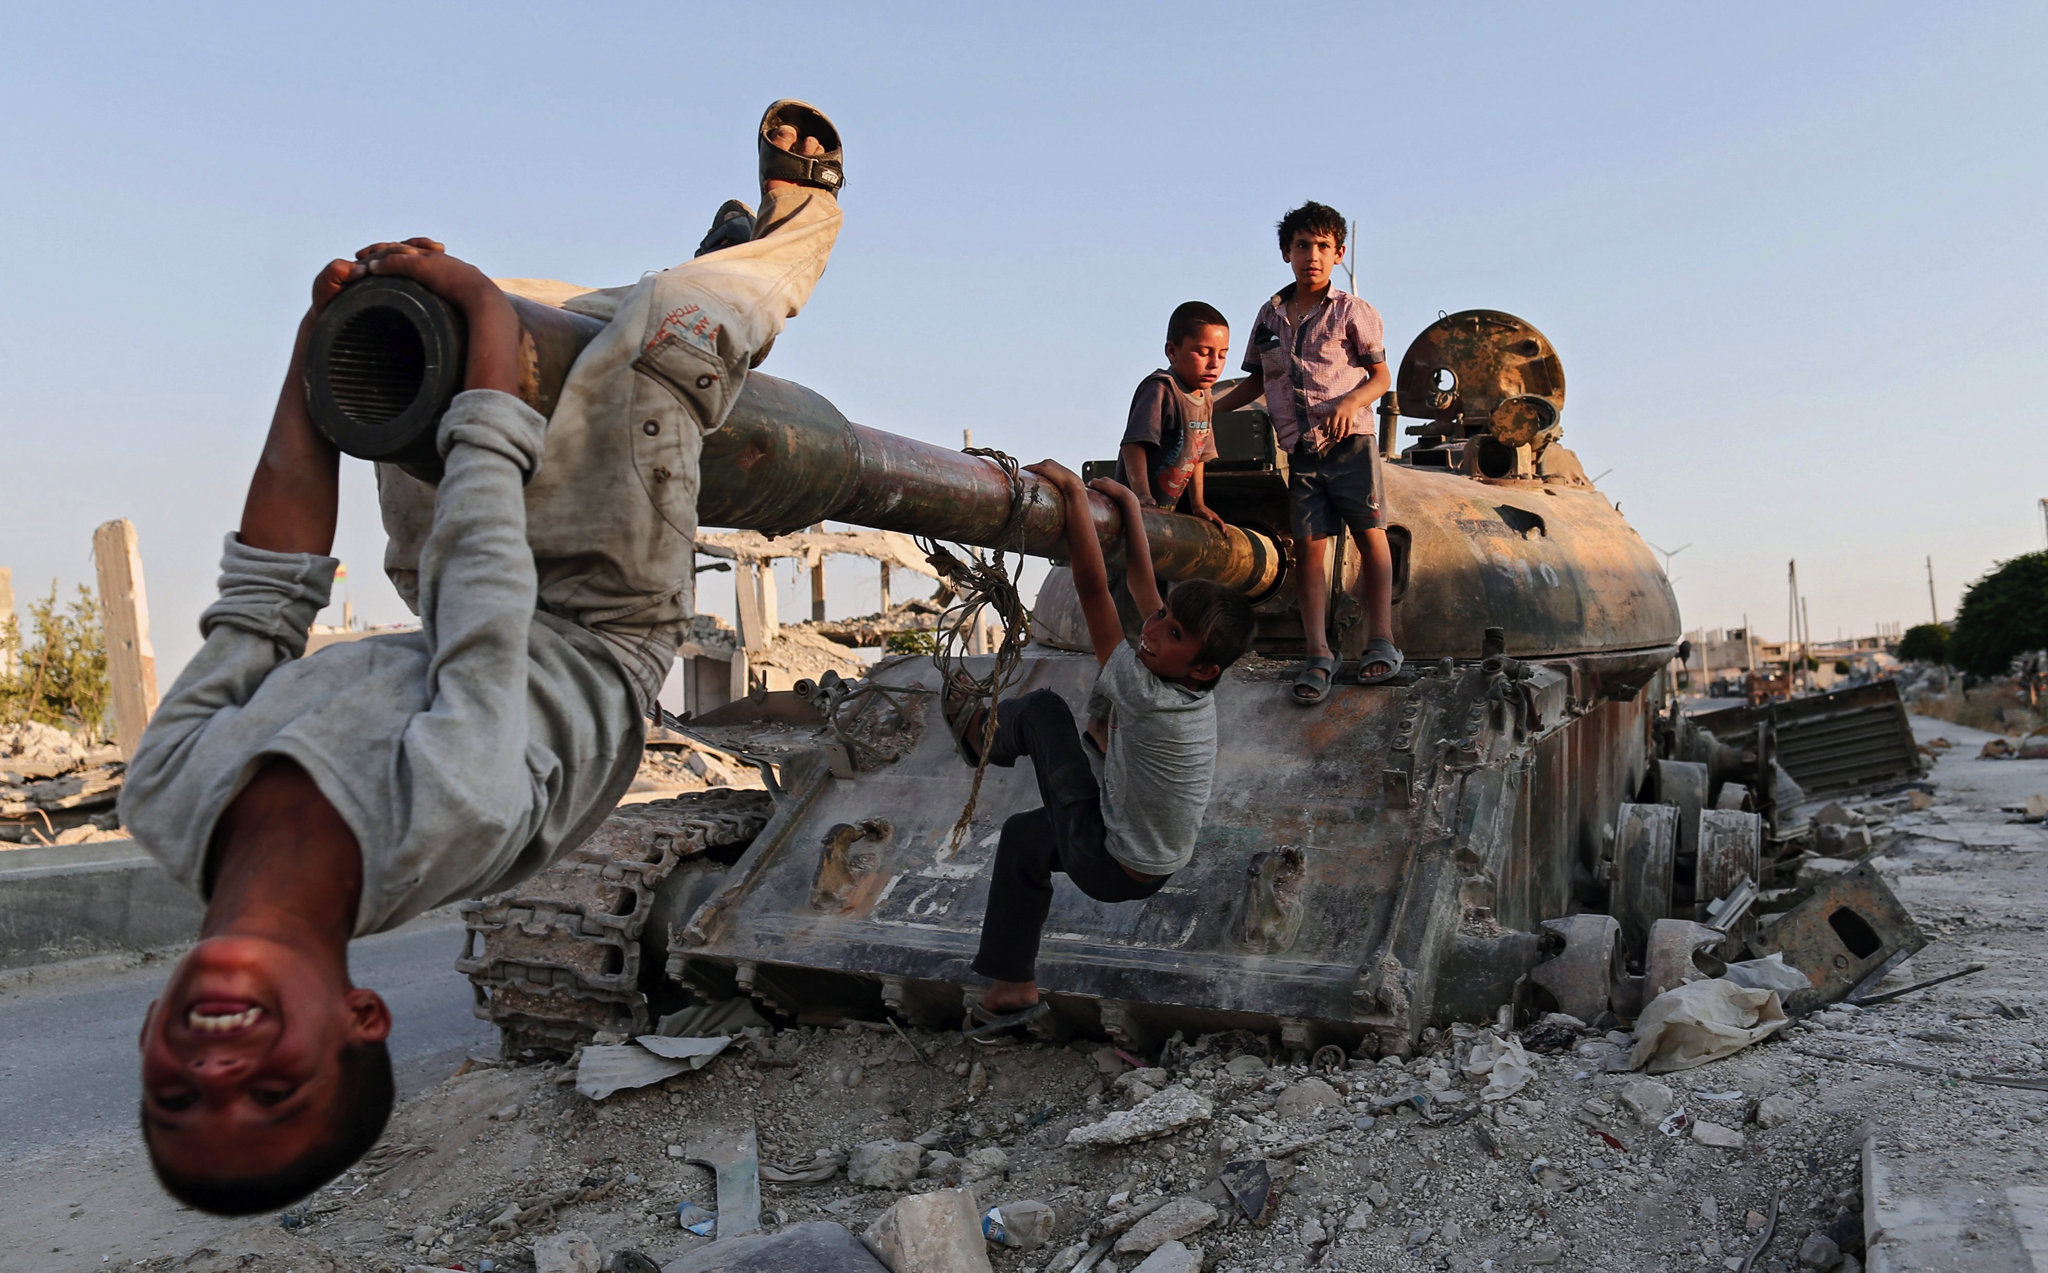 Syrian children play on a destroyed tank in south of Kobane in Syria.